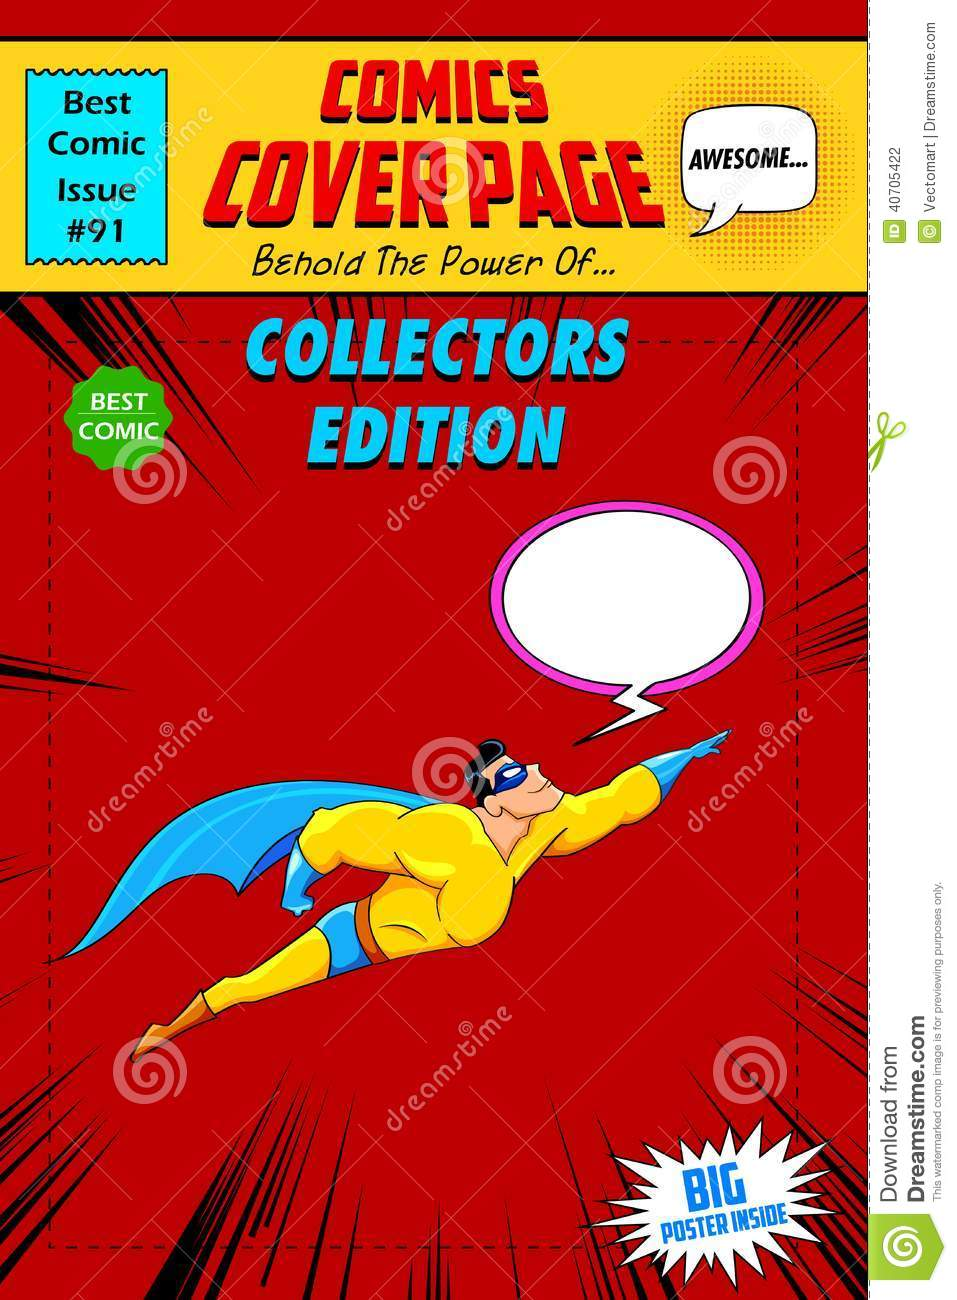 Book Cover Illustration Rates : Comic book cover stock vector illustration of